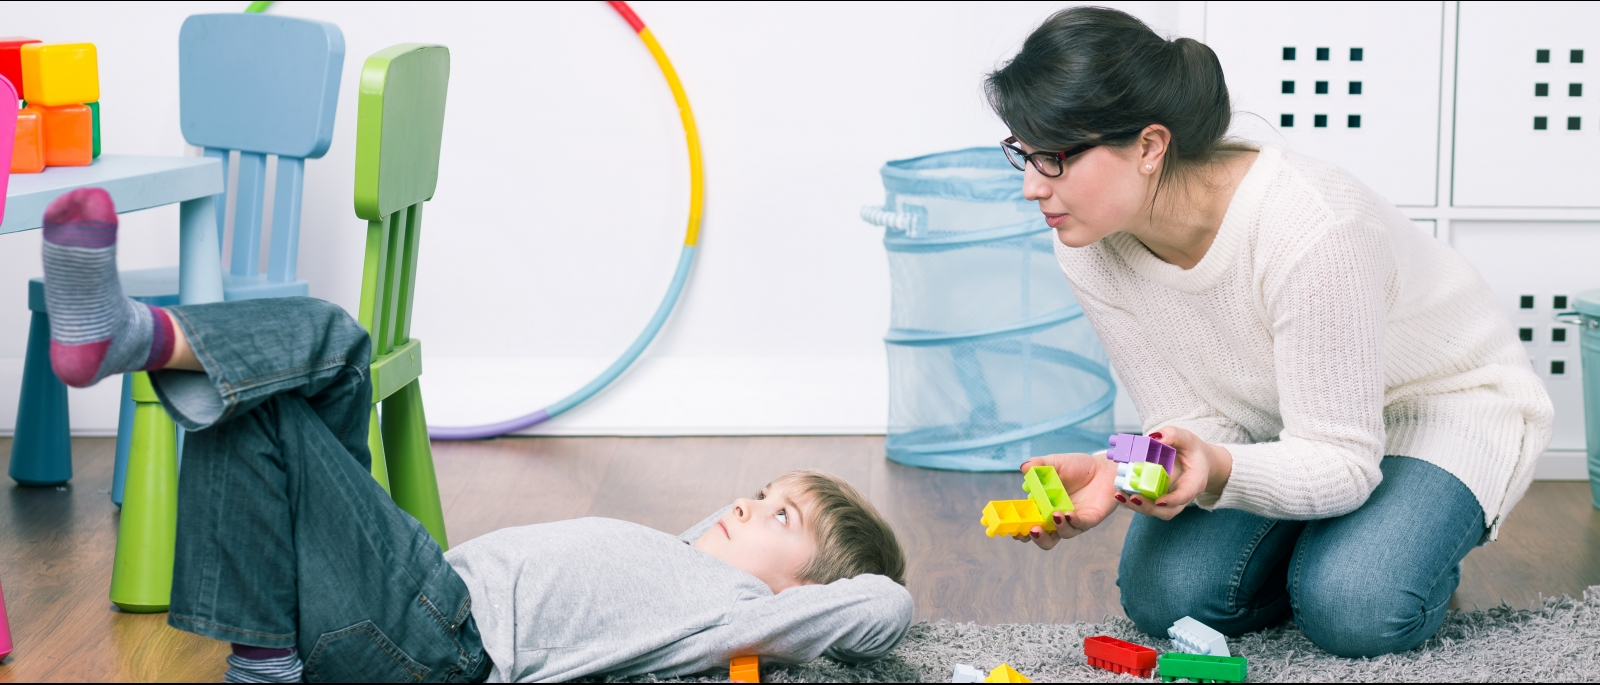 The Practicum Experience in Coaching Children and Teens